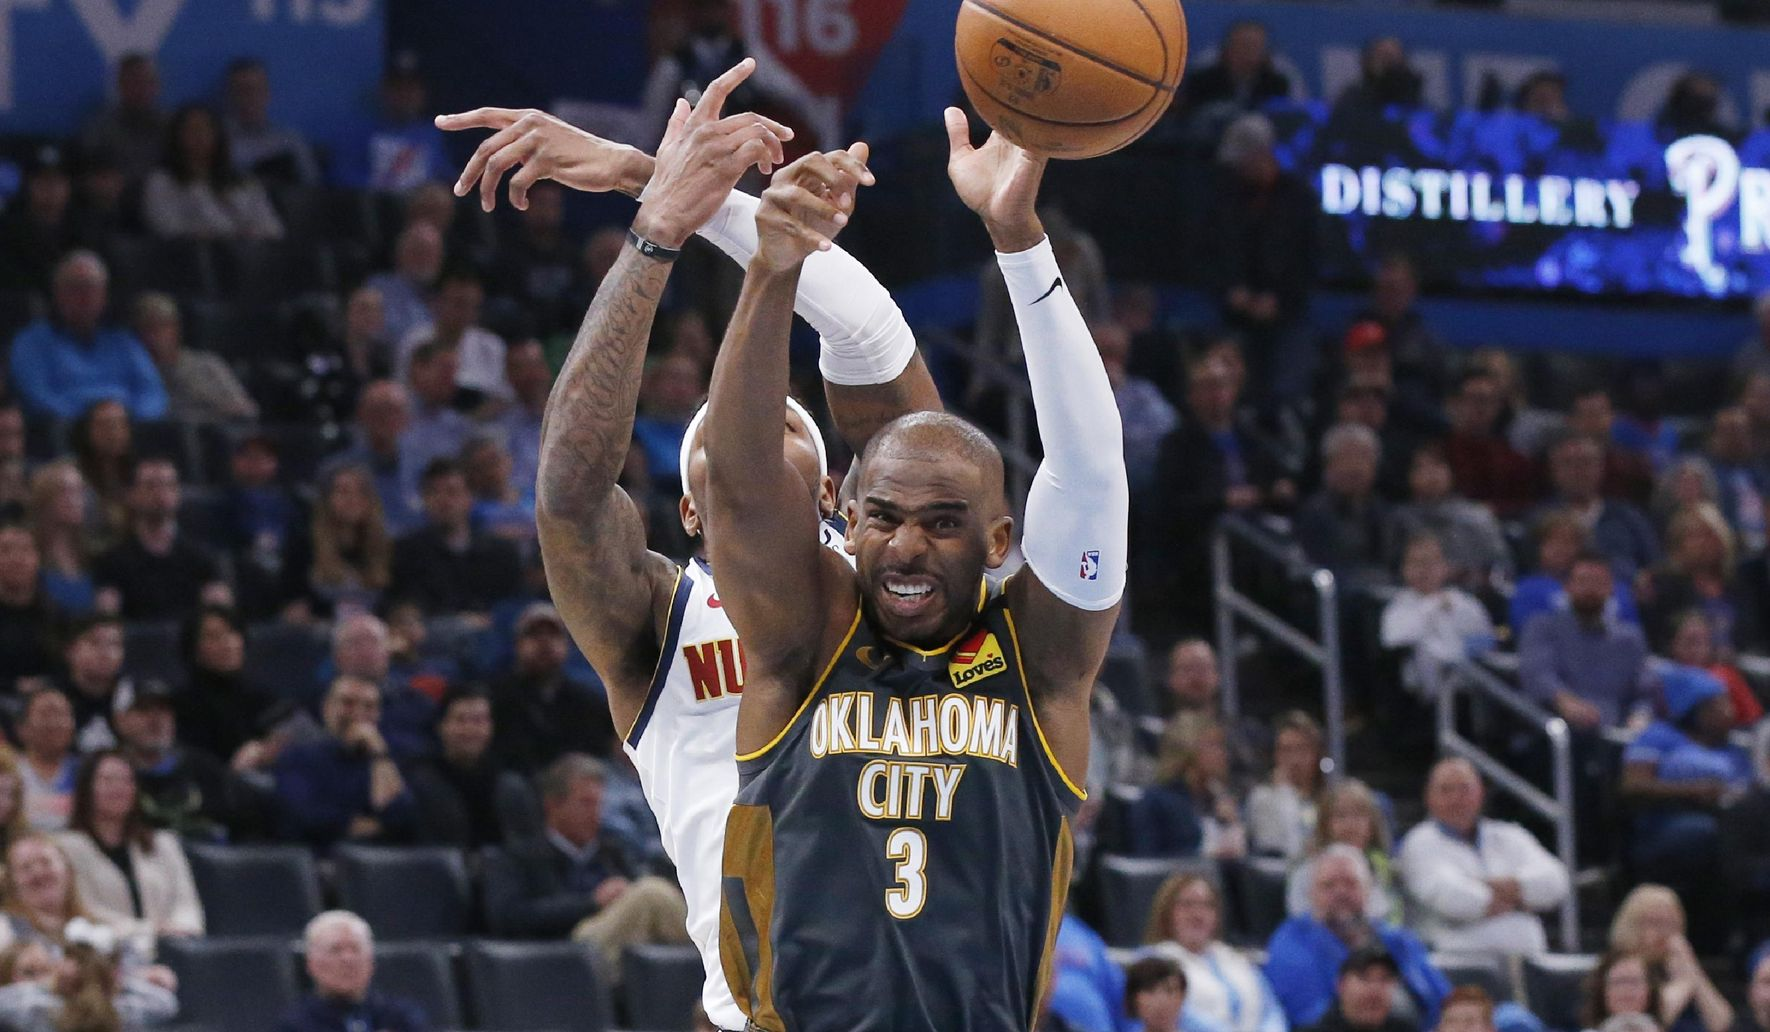 Nuggets_thunder_basketball_97133_c0-130-3105-1940_s1770x1032